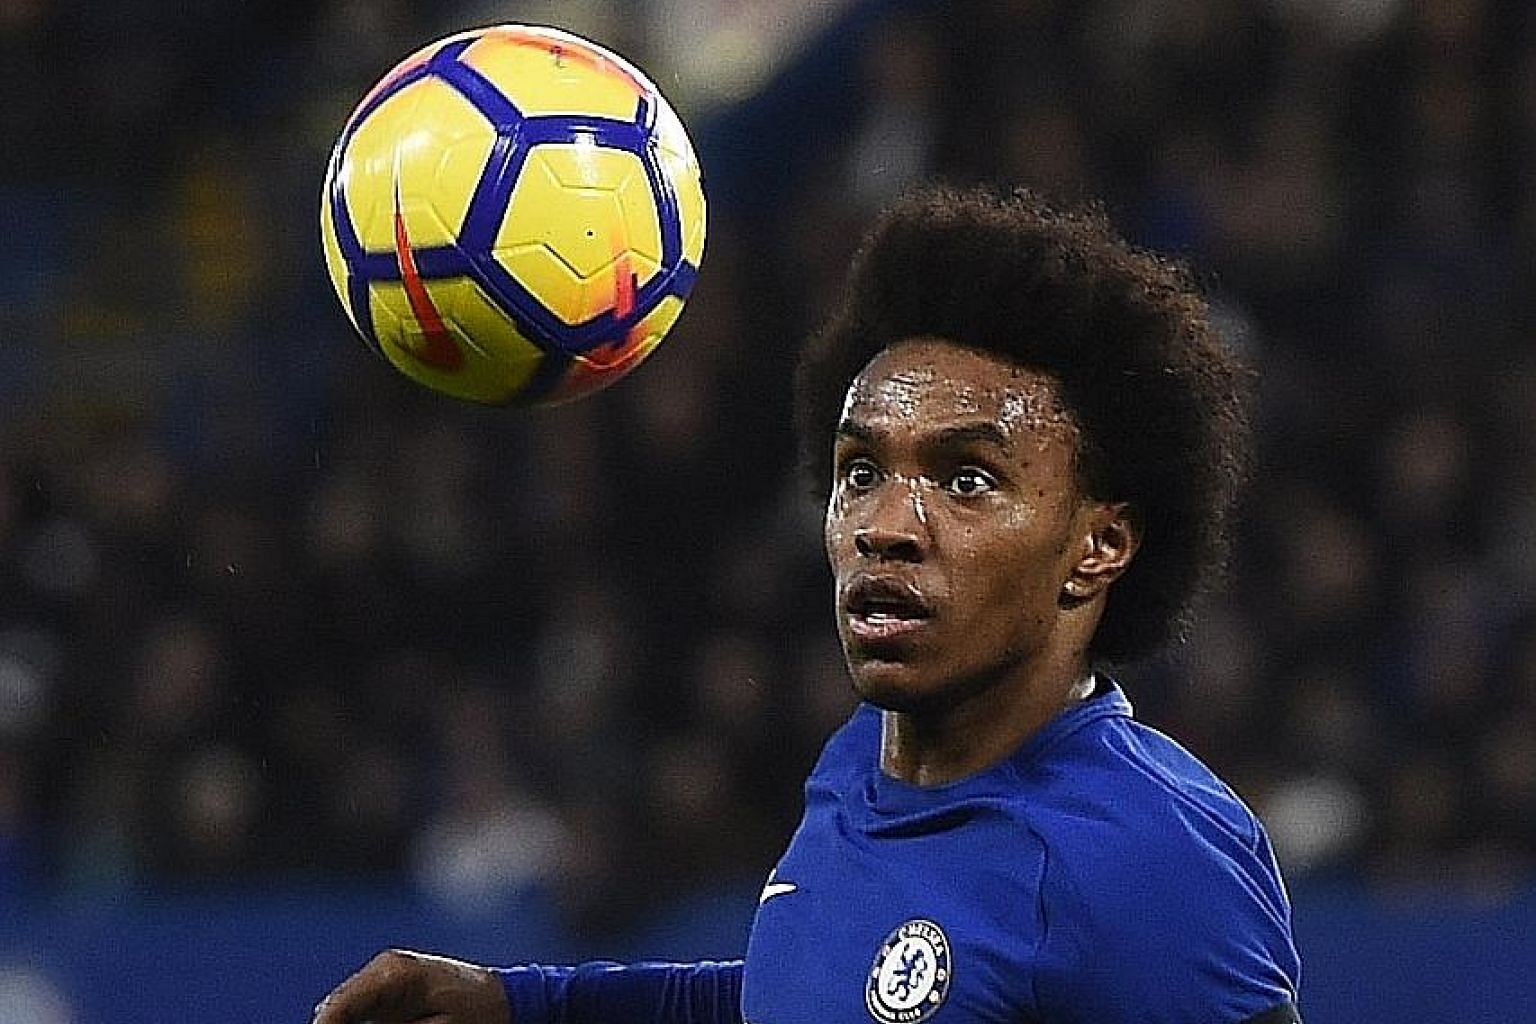 Chelsea's Willian in control in the game against Crystal Palace, in which he scored the opener and had a hand in the second.